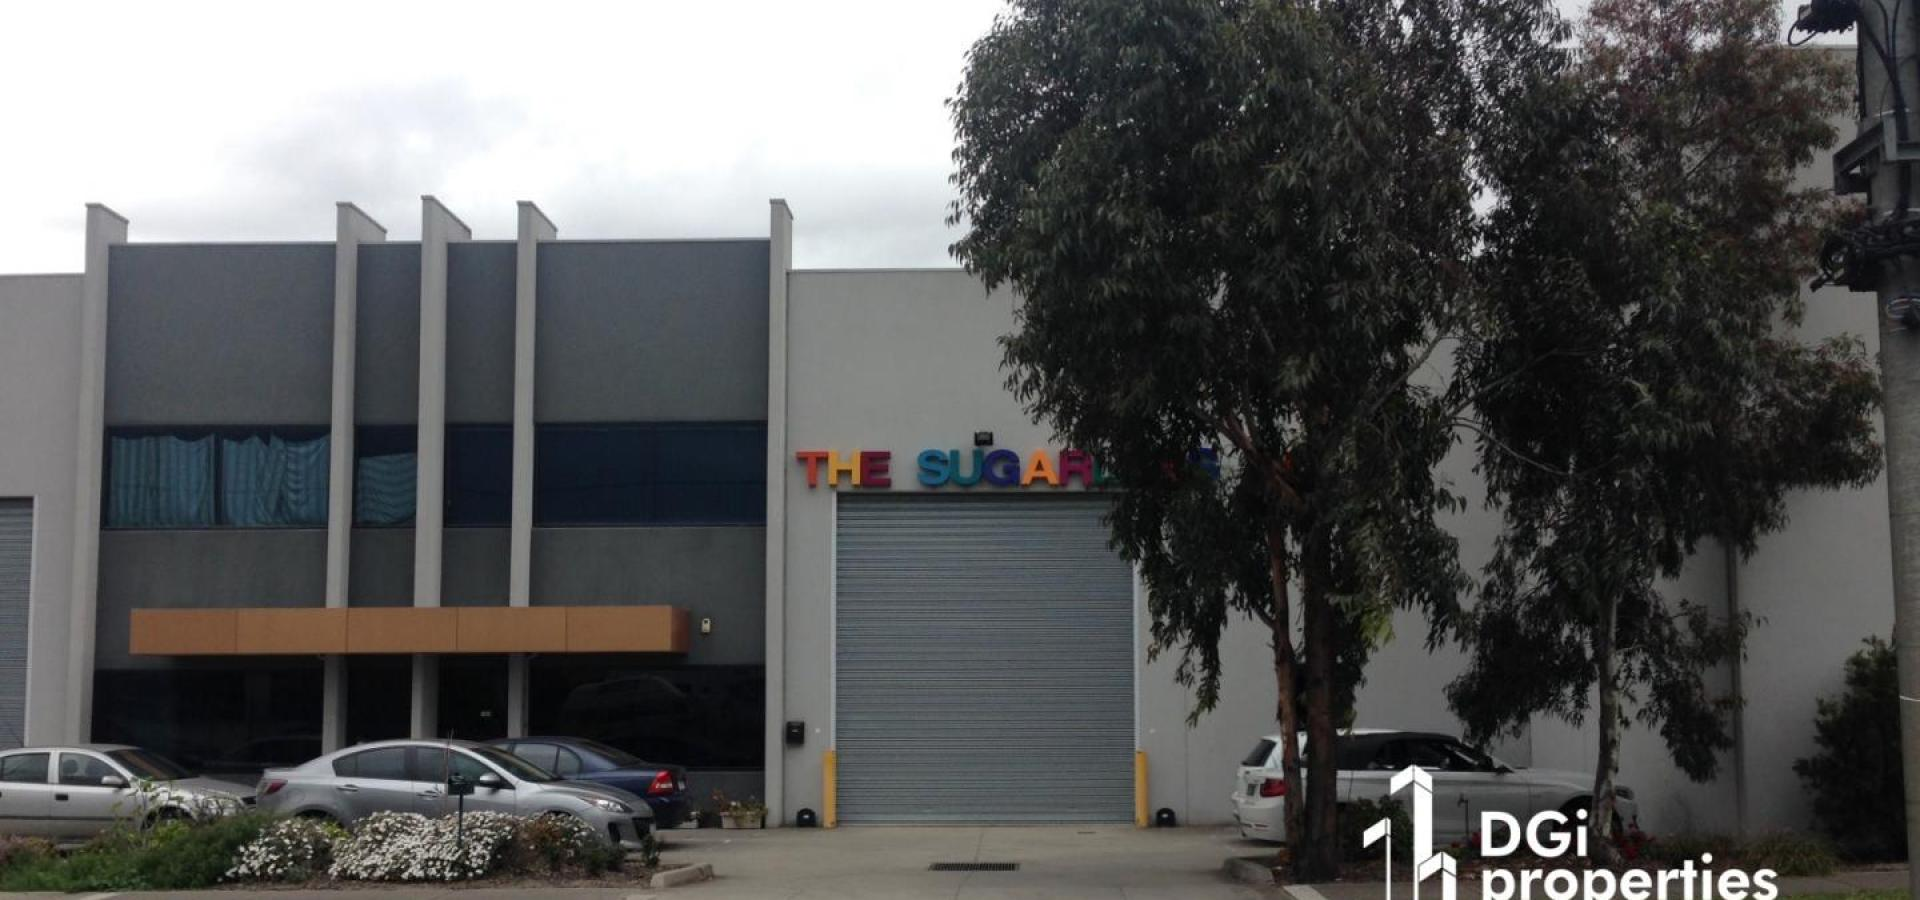 NEAT & TIDY OFFICE / SHOWROOM / WAREHOUSE BUILDING IN PRIME NORTHERN SUBURB LOCALE